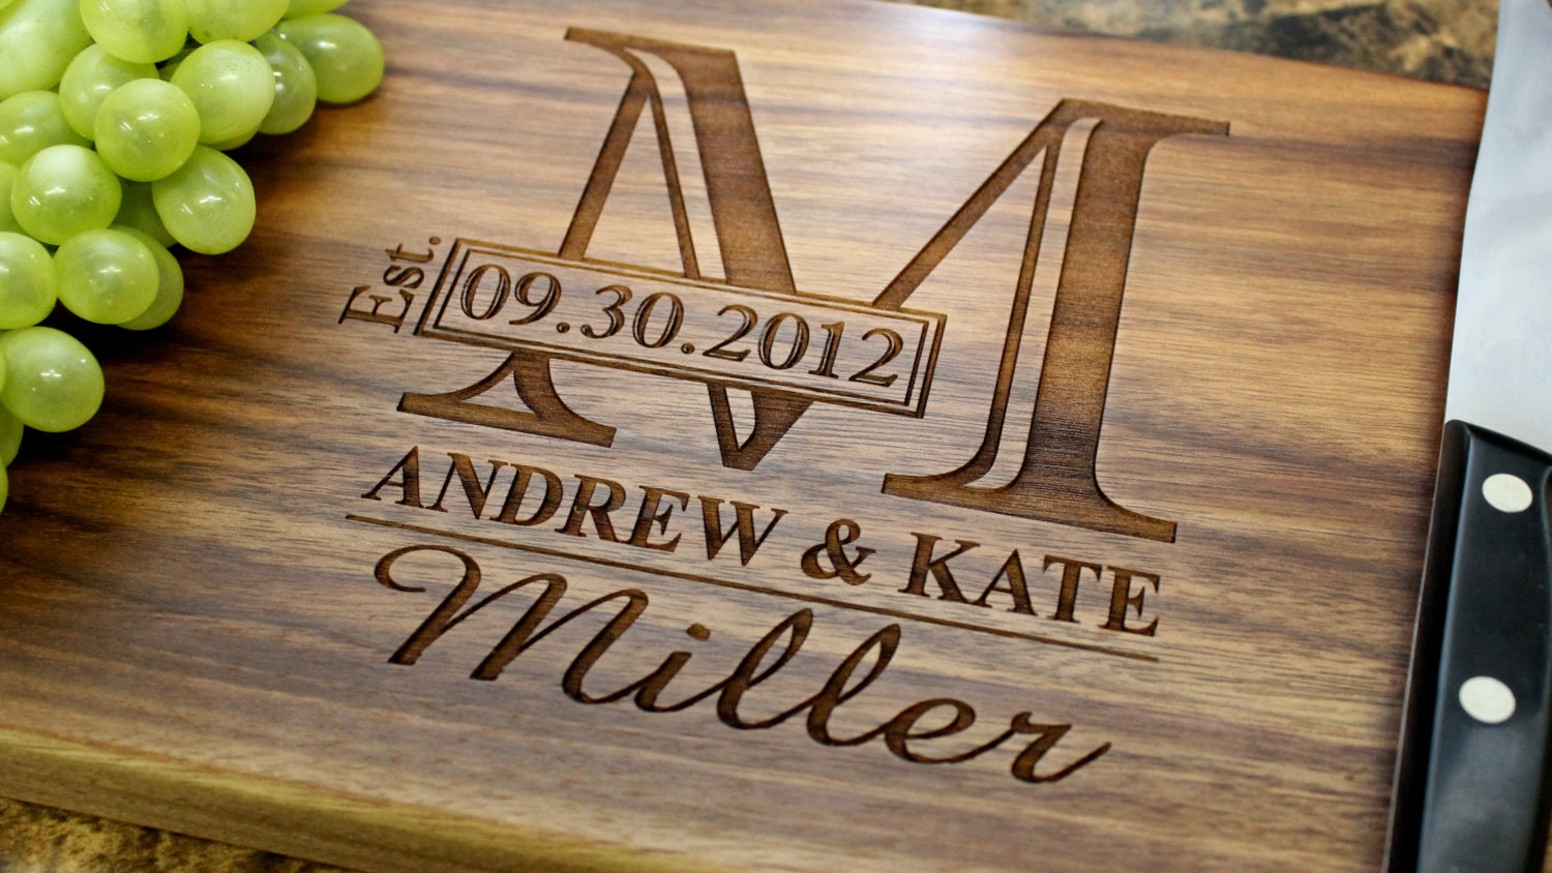 Application to customize artwork for engraving and create memorable cutting  boards for all occasions: Weddings, Anniversaries,Birthdays